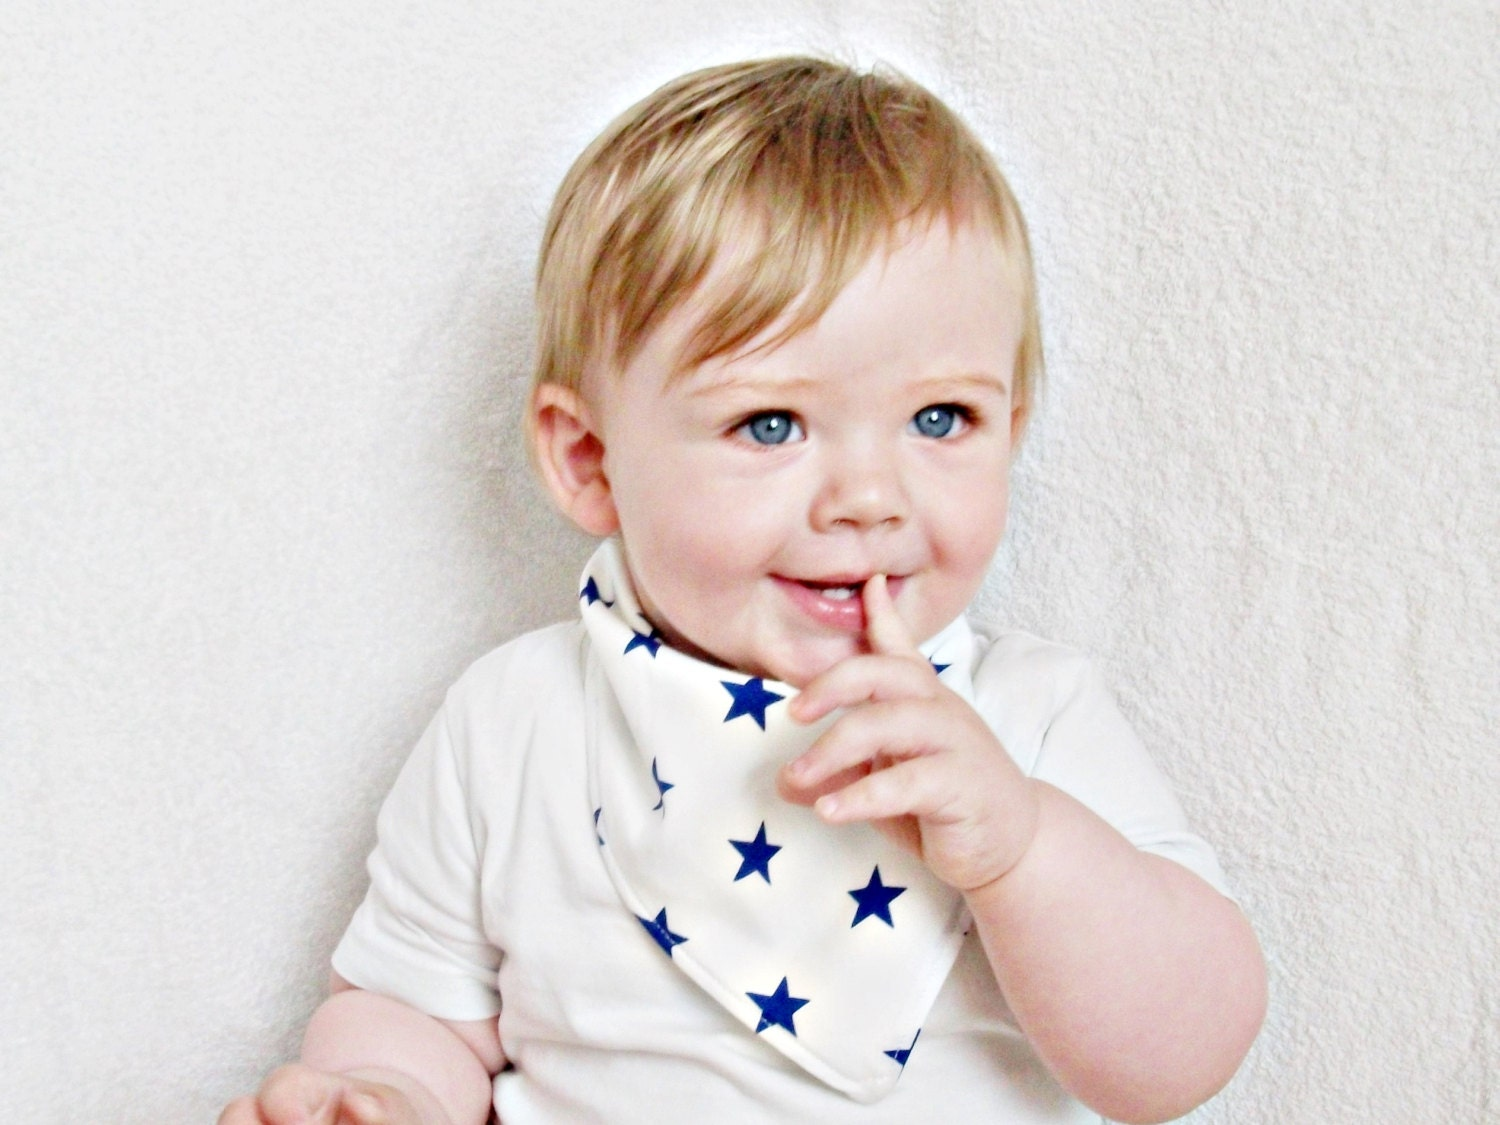 Finally, Baby bibs that are trendy, fashion forward, and functional. Your baby will have the cutest fashion accessory around, and you will keep his/her clothes clean and dry from drooling.